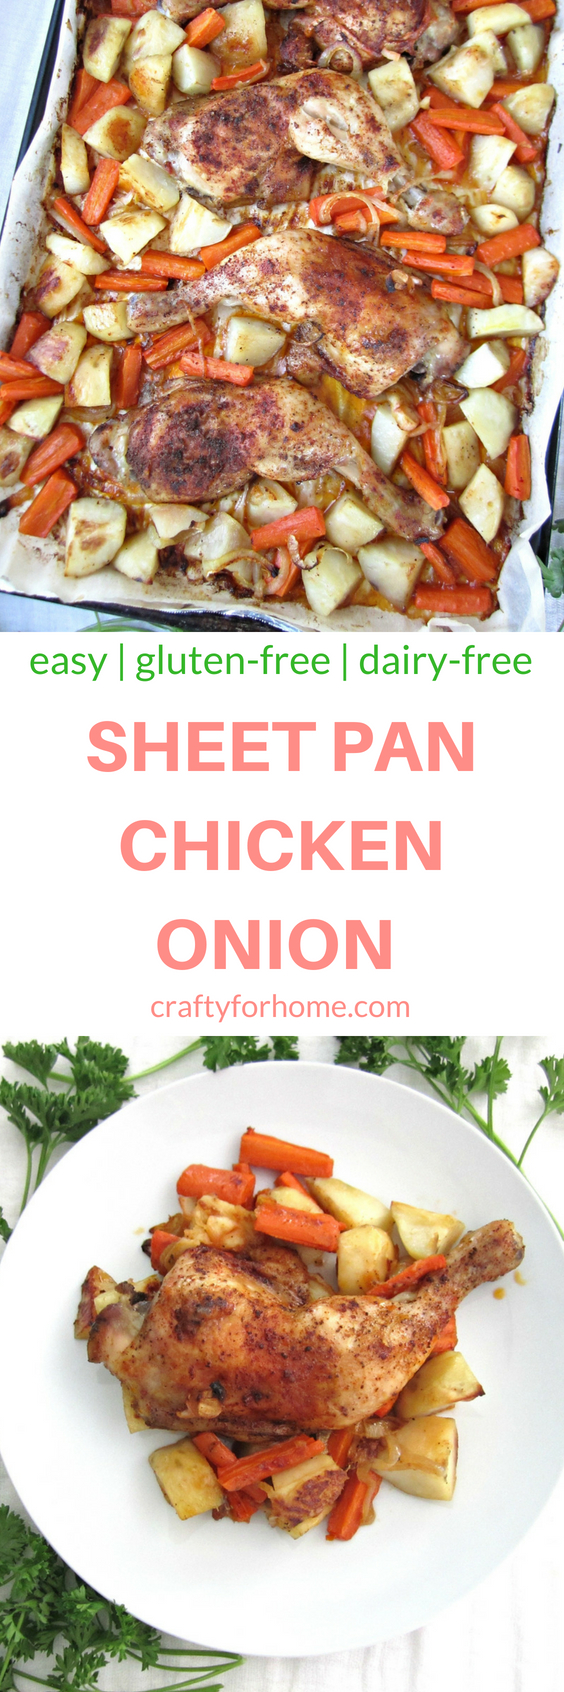 Healthy baked Sheet Pan Onion Chicken for a quick and easy weeknight meal with simple ingredients, tender and burst with flavor #sheetpan #glutenfree #chickendinner #bakedchicken for full recipe on craftyforhome.com